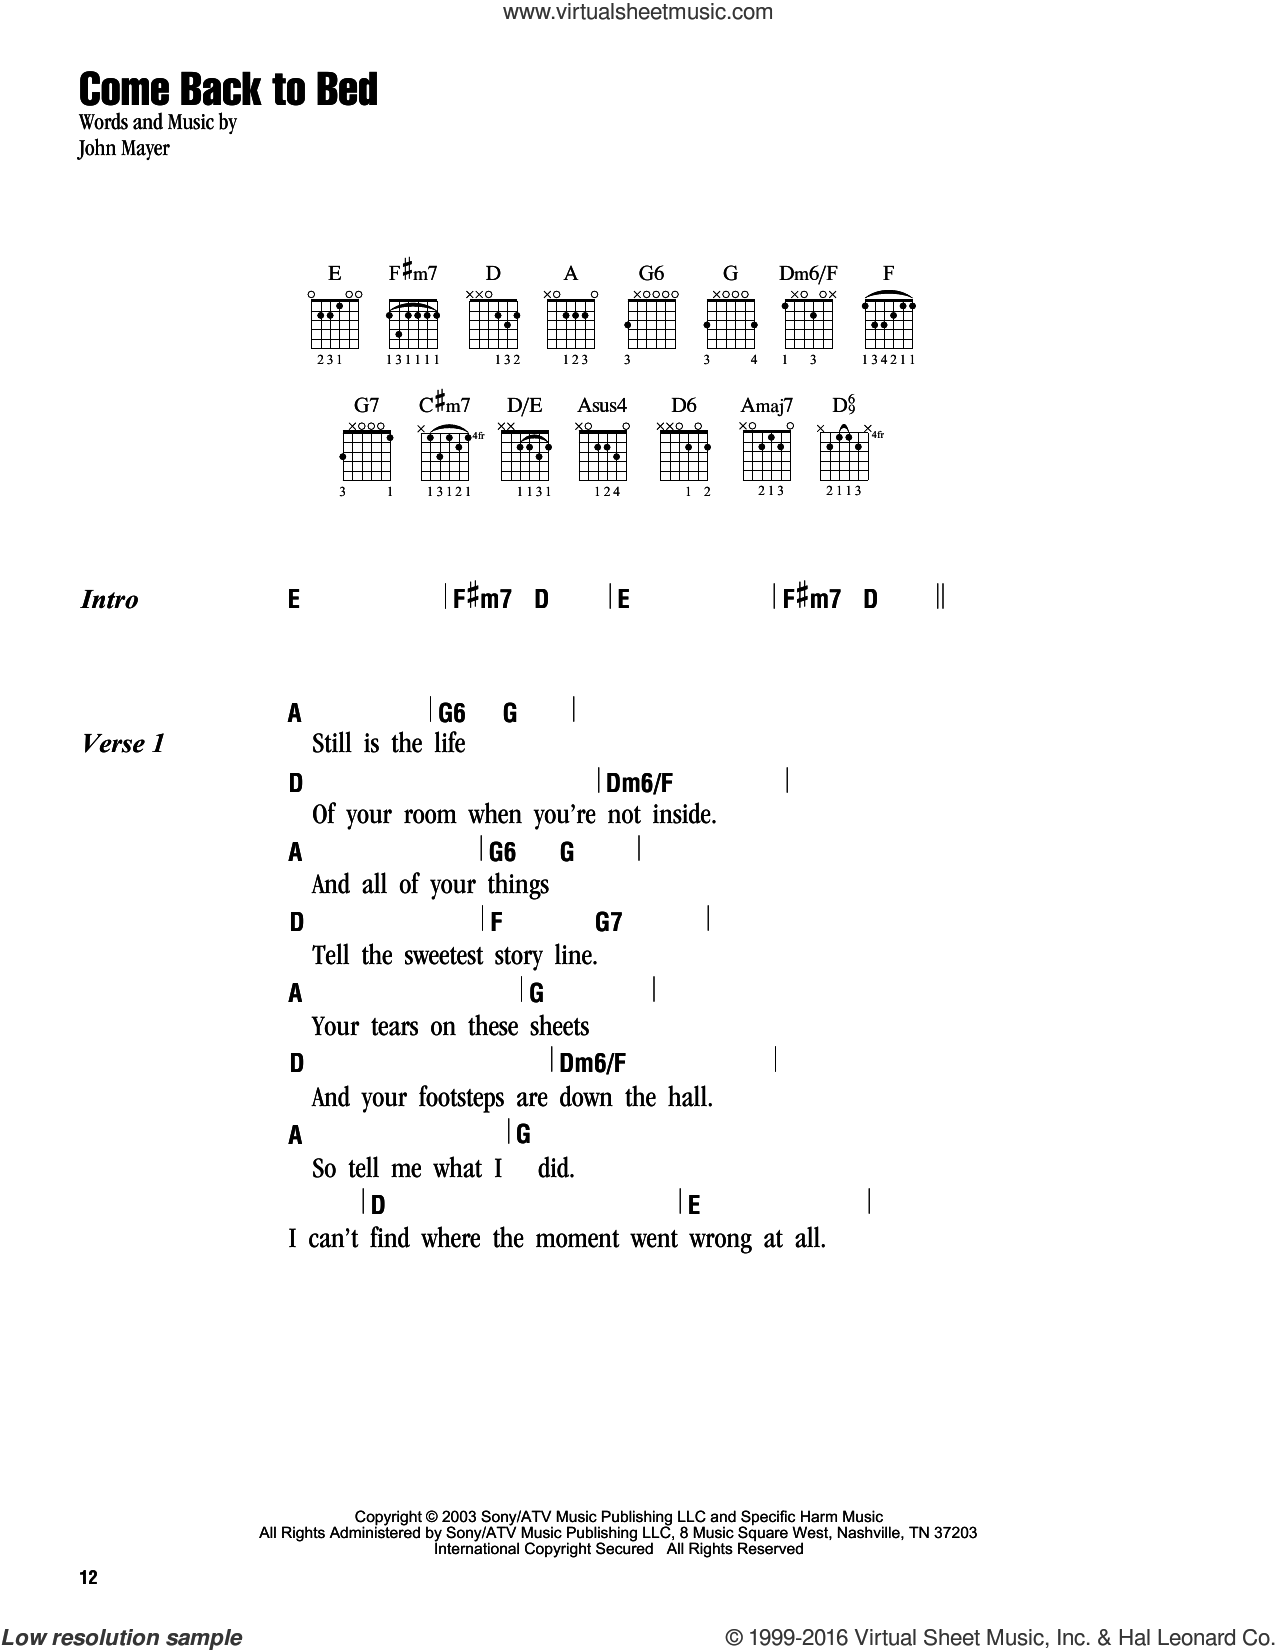 Come Back To Bed sheet music for guitar (chords) by John Mayer. Score Image Preview.